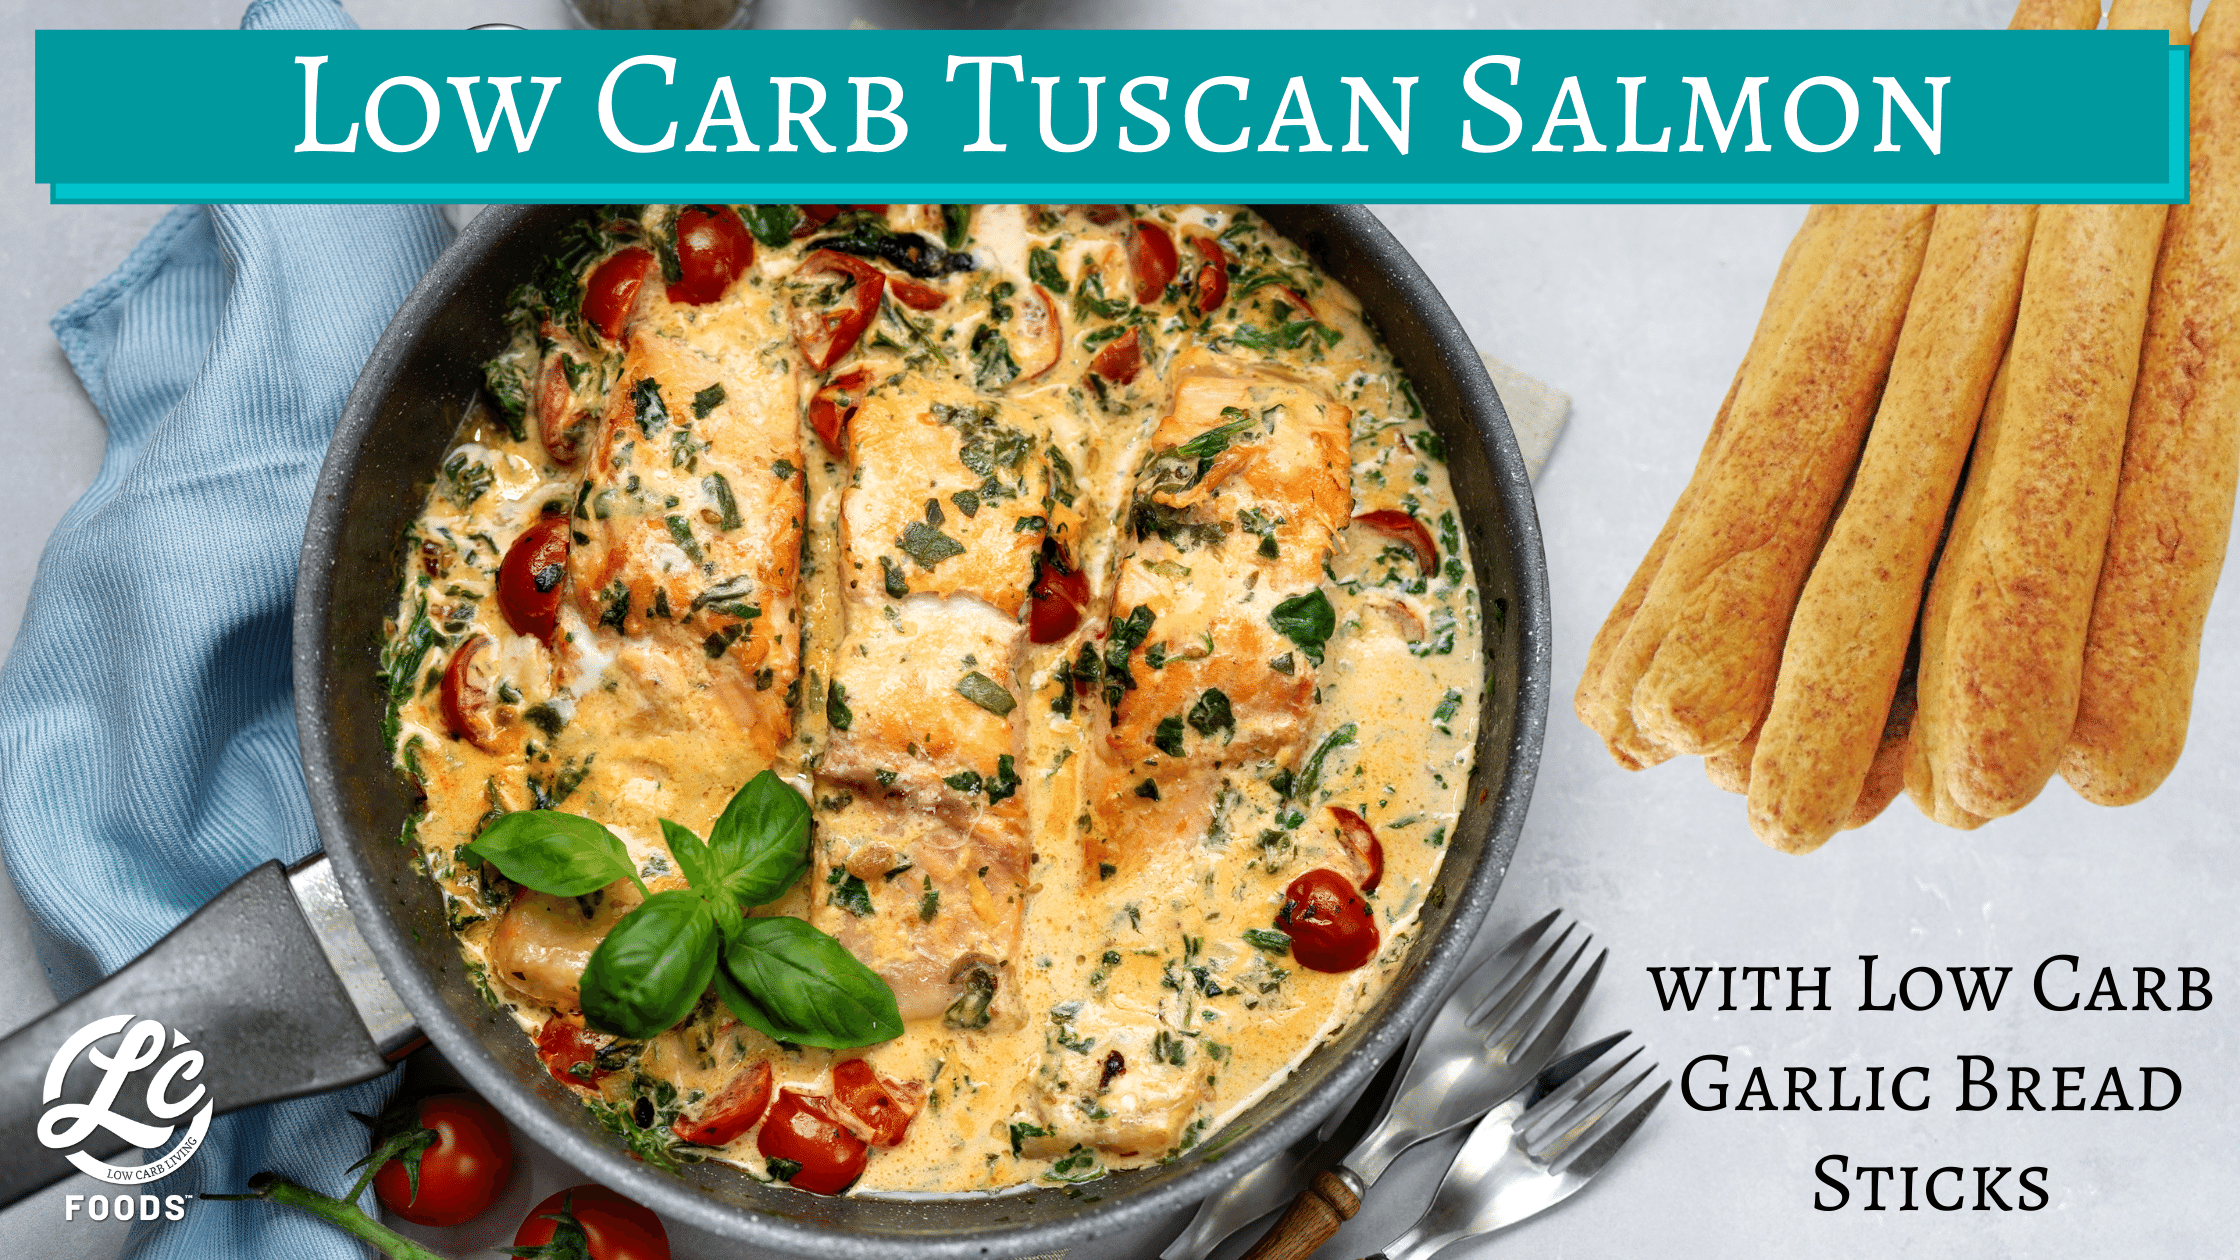 Thumbnail for Low Carb Tuscan Salmon with Low Carb Garlic Bread Sticks